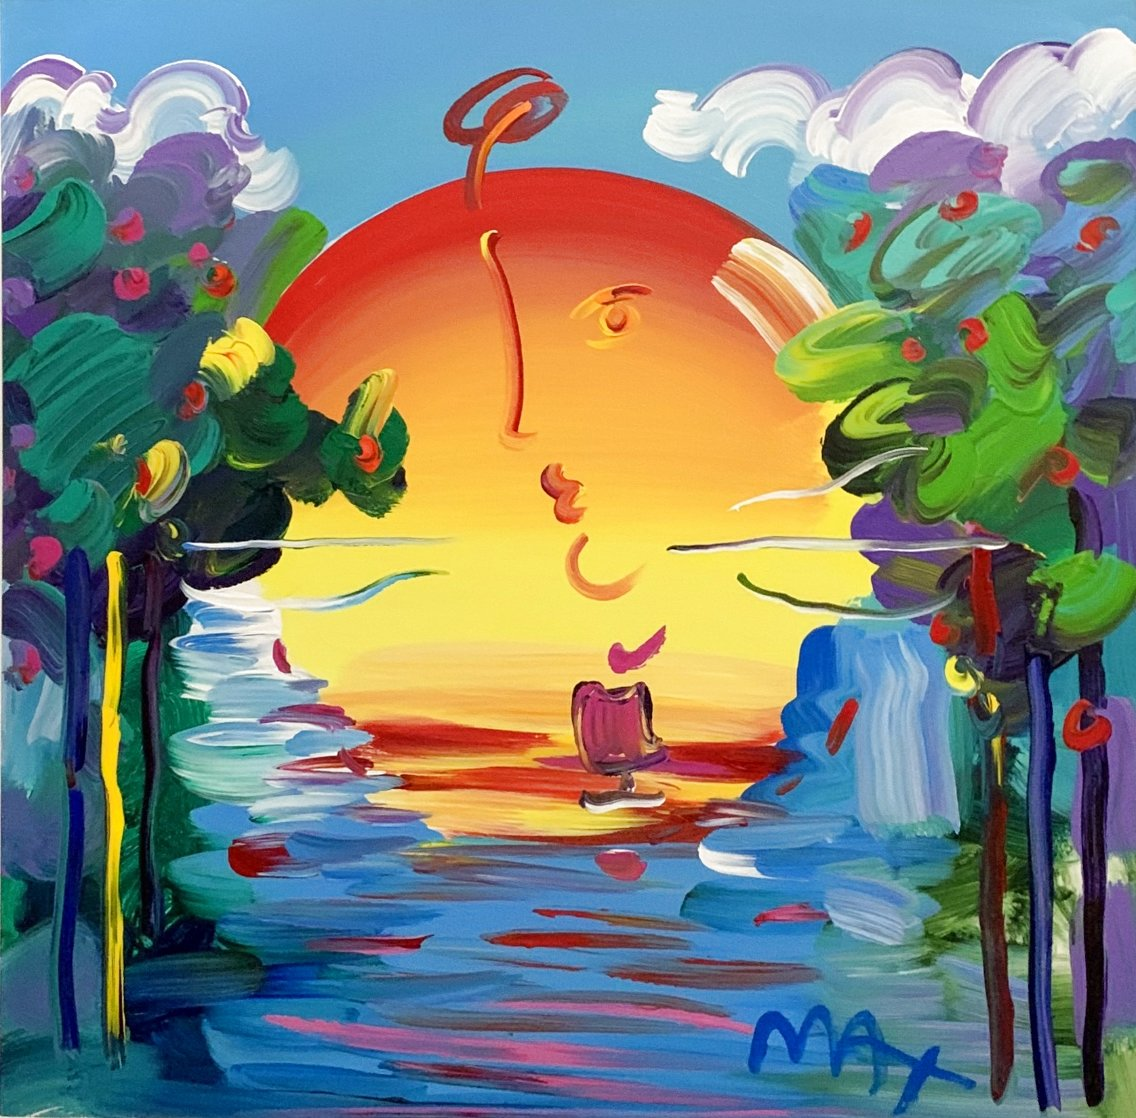 Better World Ver. XVIII Unique 2016 33x33 Original Painting by Peter Max